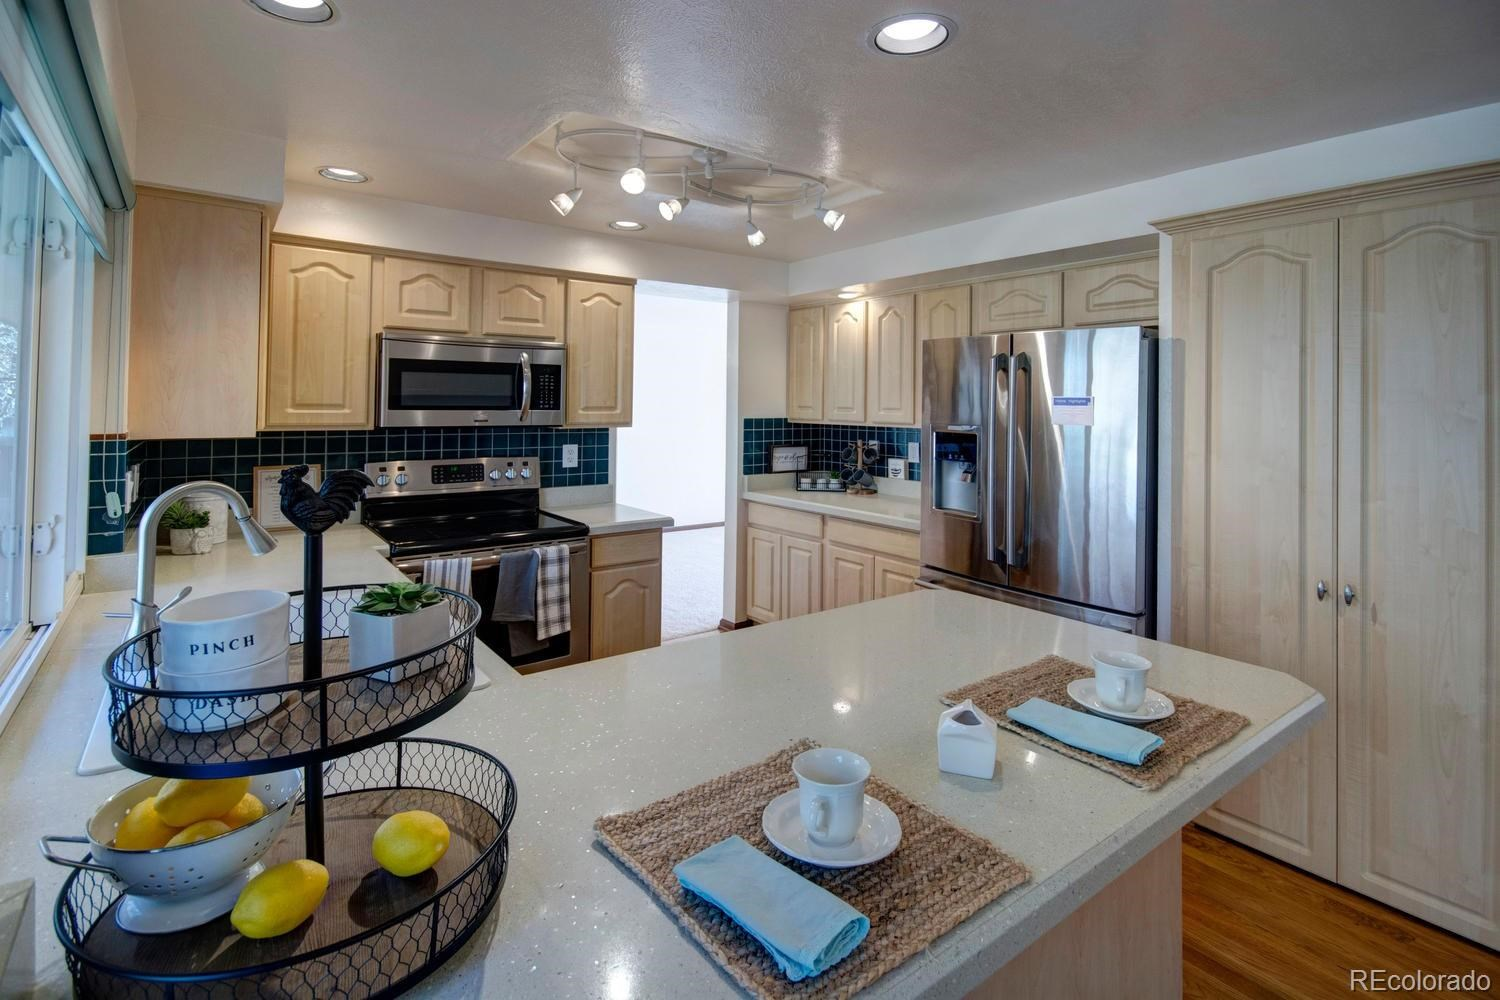 MLS# 5118504 - 10 - 4765 W 101st Place, Westminster, CO 80031